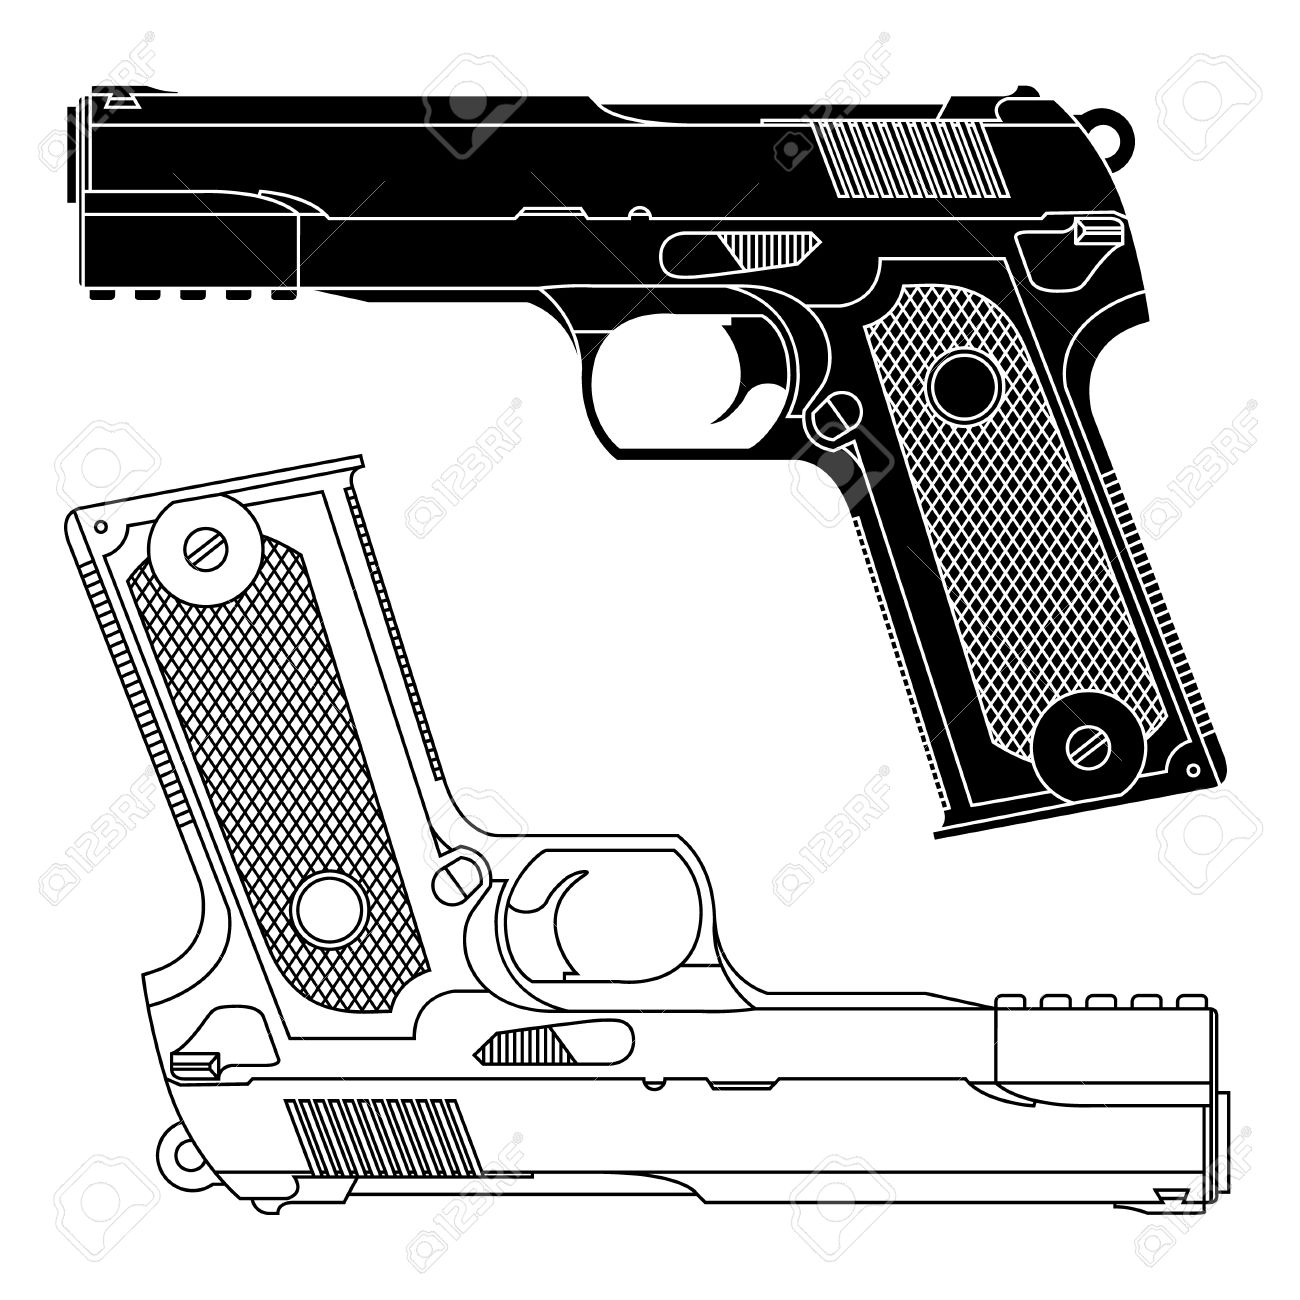 Technical Line Drawing Of A 9mm Pistol Handgun. Precise Lines.